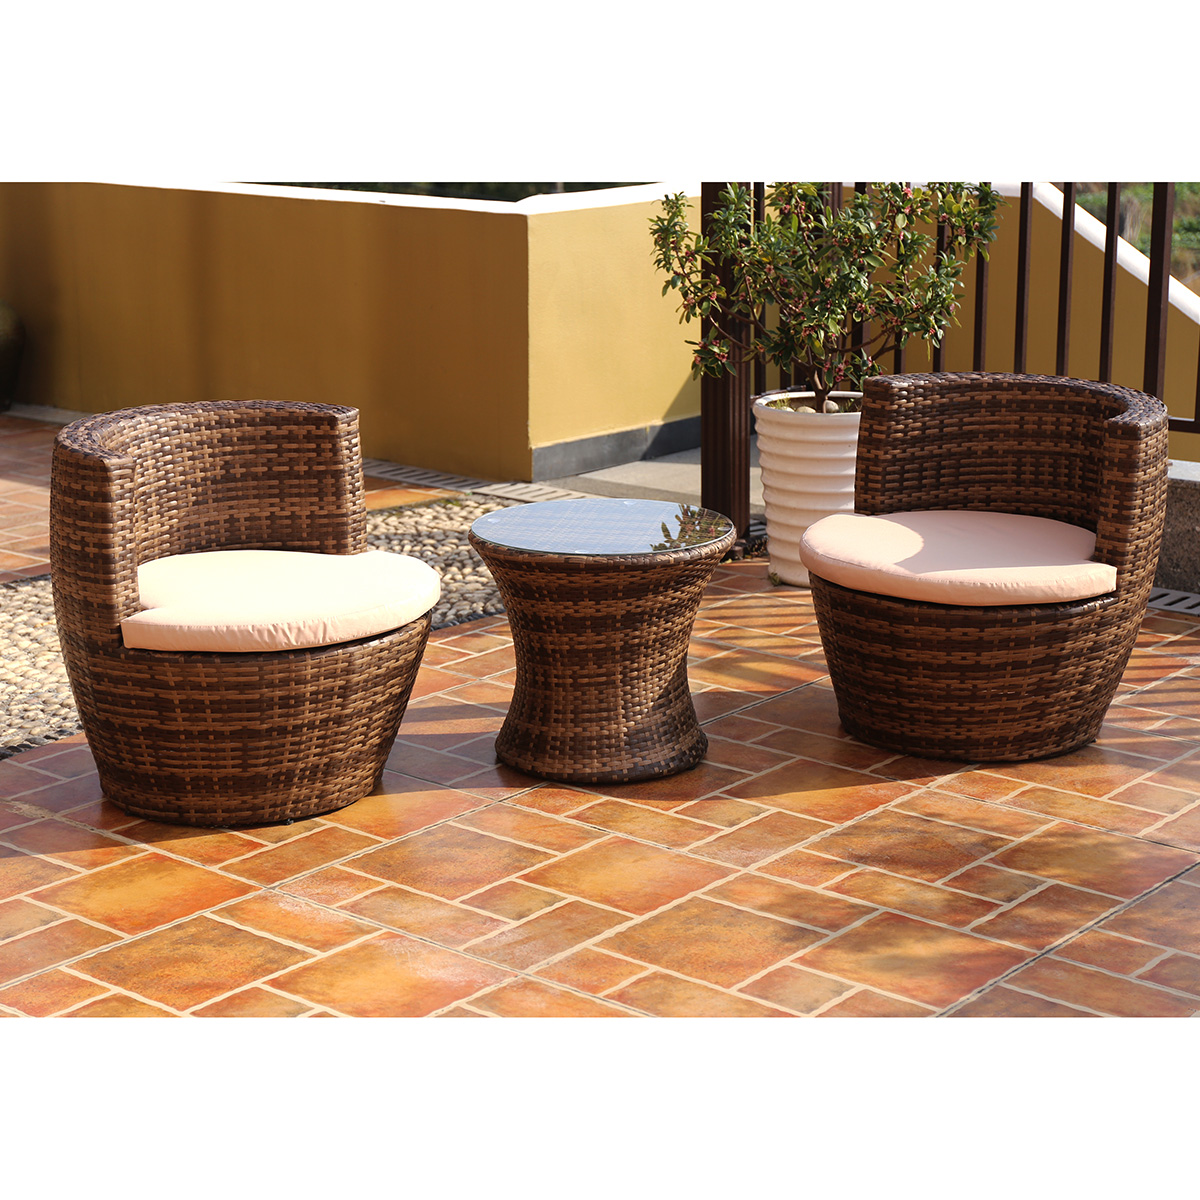 charles bentley 3 piece rattan stacking outdoor patio furniture set